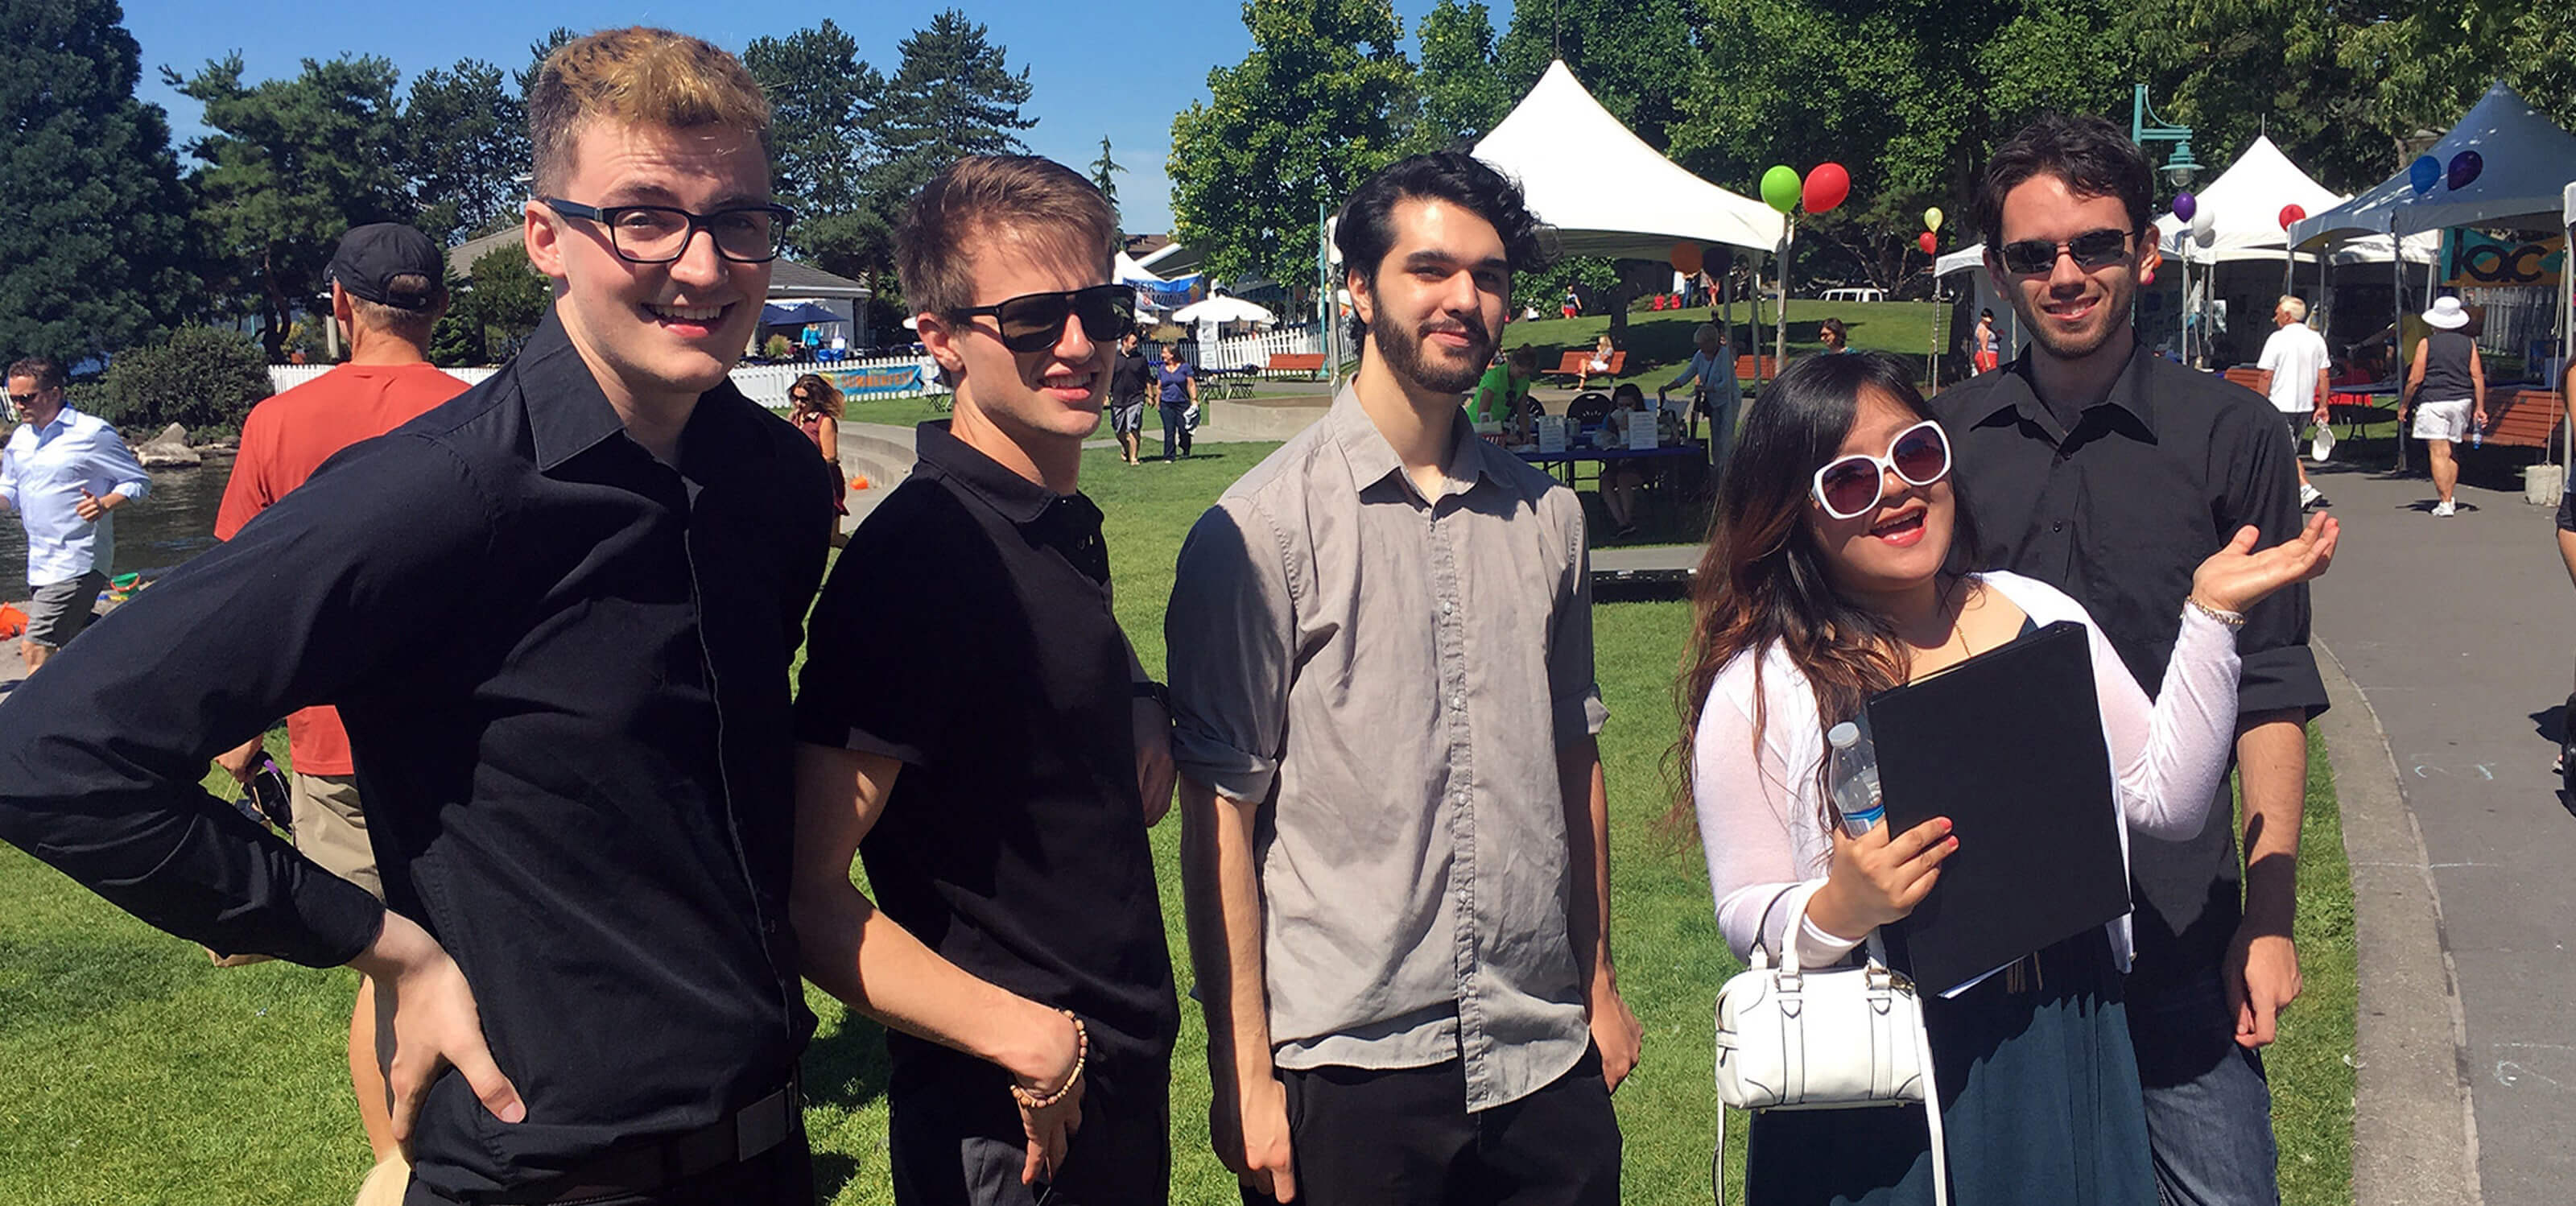 Members of the DigiPen Jazz Ensemble at Kirkland Summerfest on a beautiful sunny day